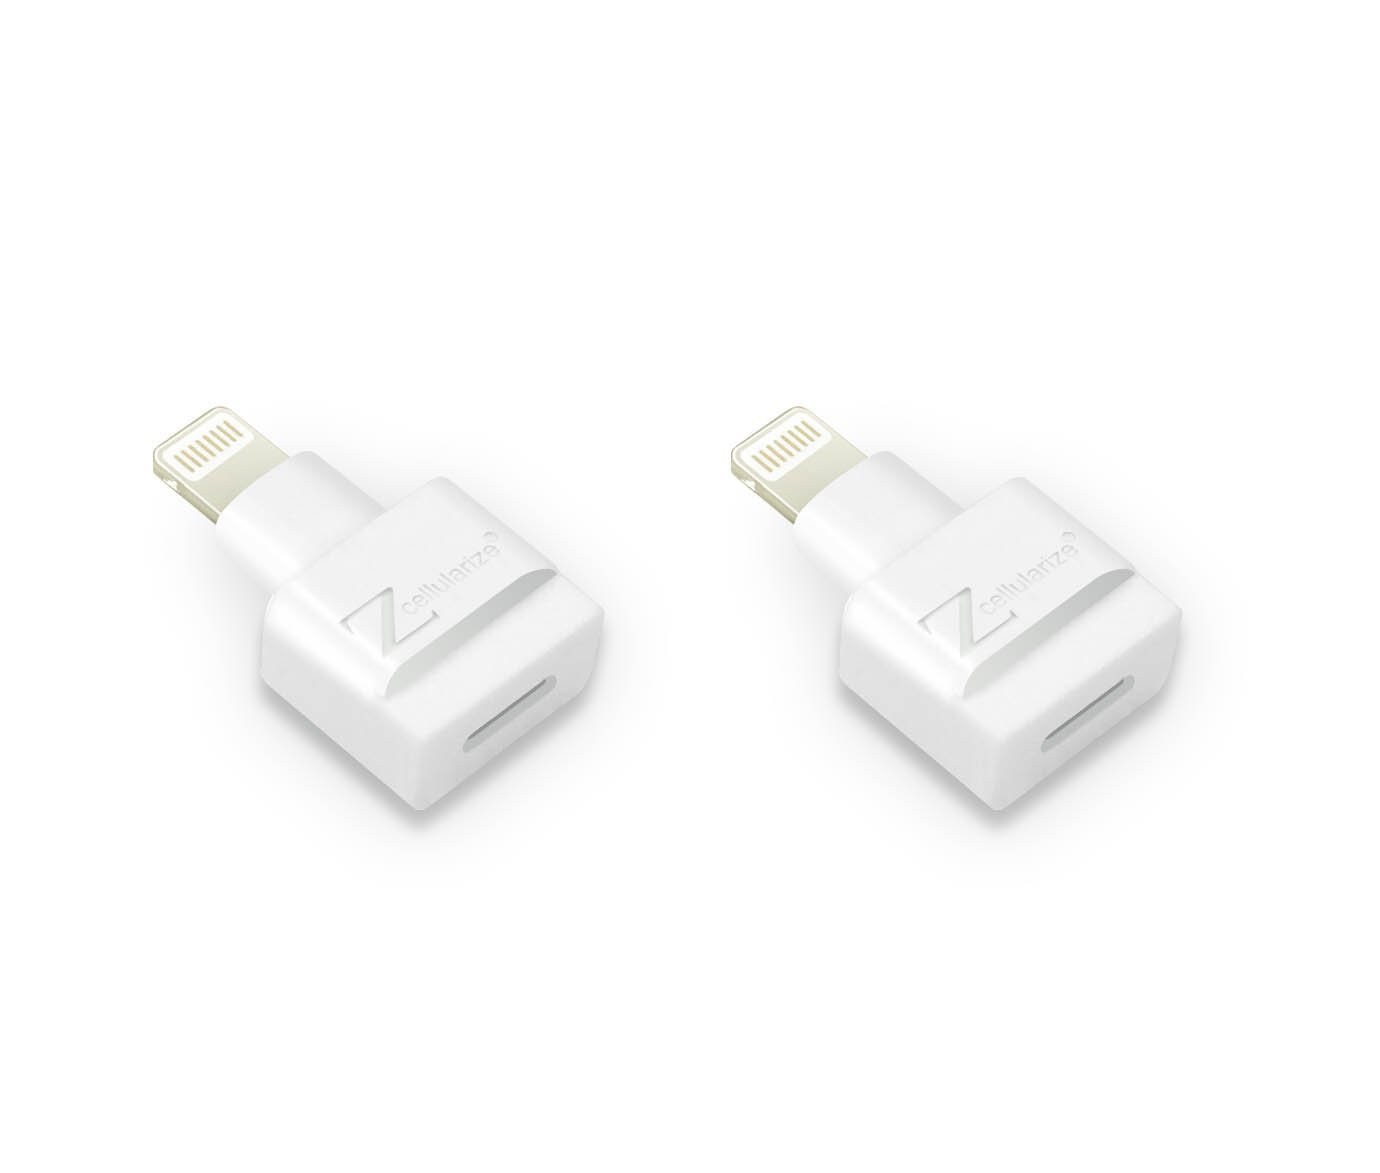 Cellularize Dock Extender (2 Pack, White) Male to Female Audio, Video Dock Charger Extension for Lifeproof, Otterbox Cases Compatible with iPhone 5, 6, 7, 7S, 8 Plus, X, iPad and More 4348705440